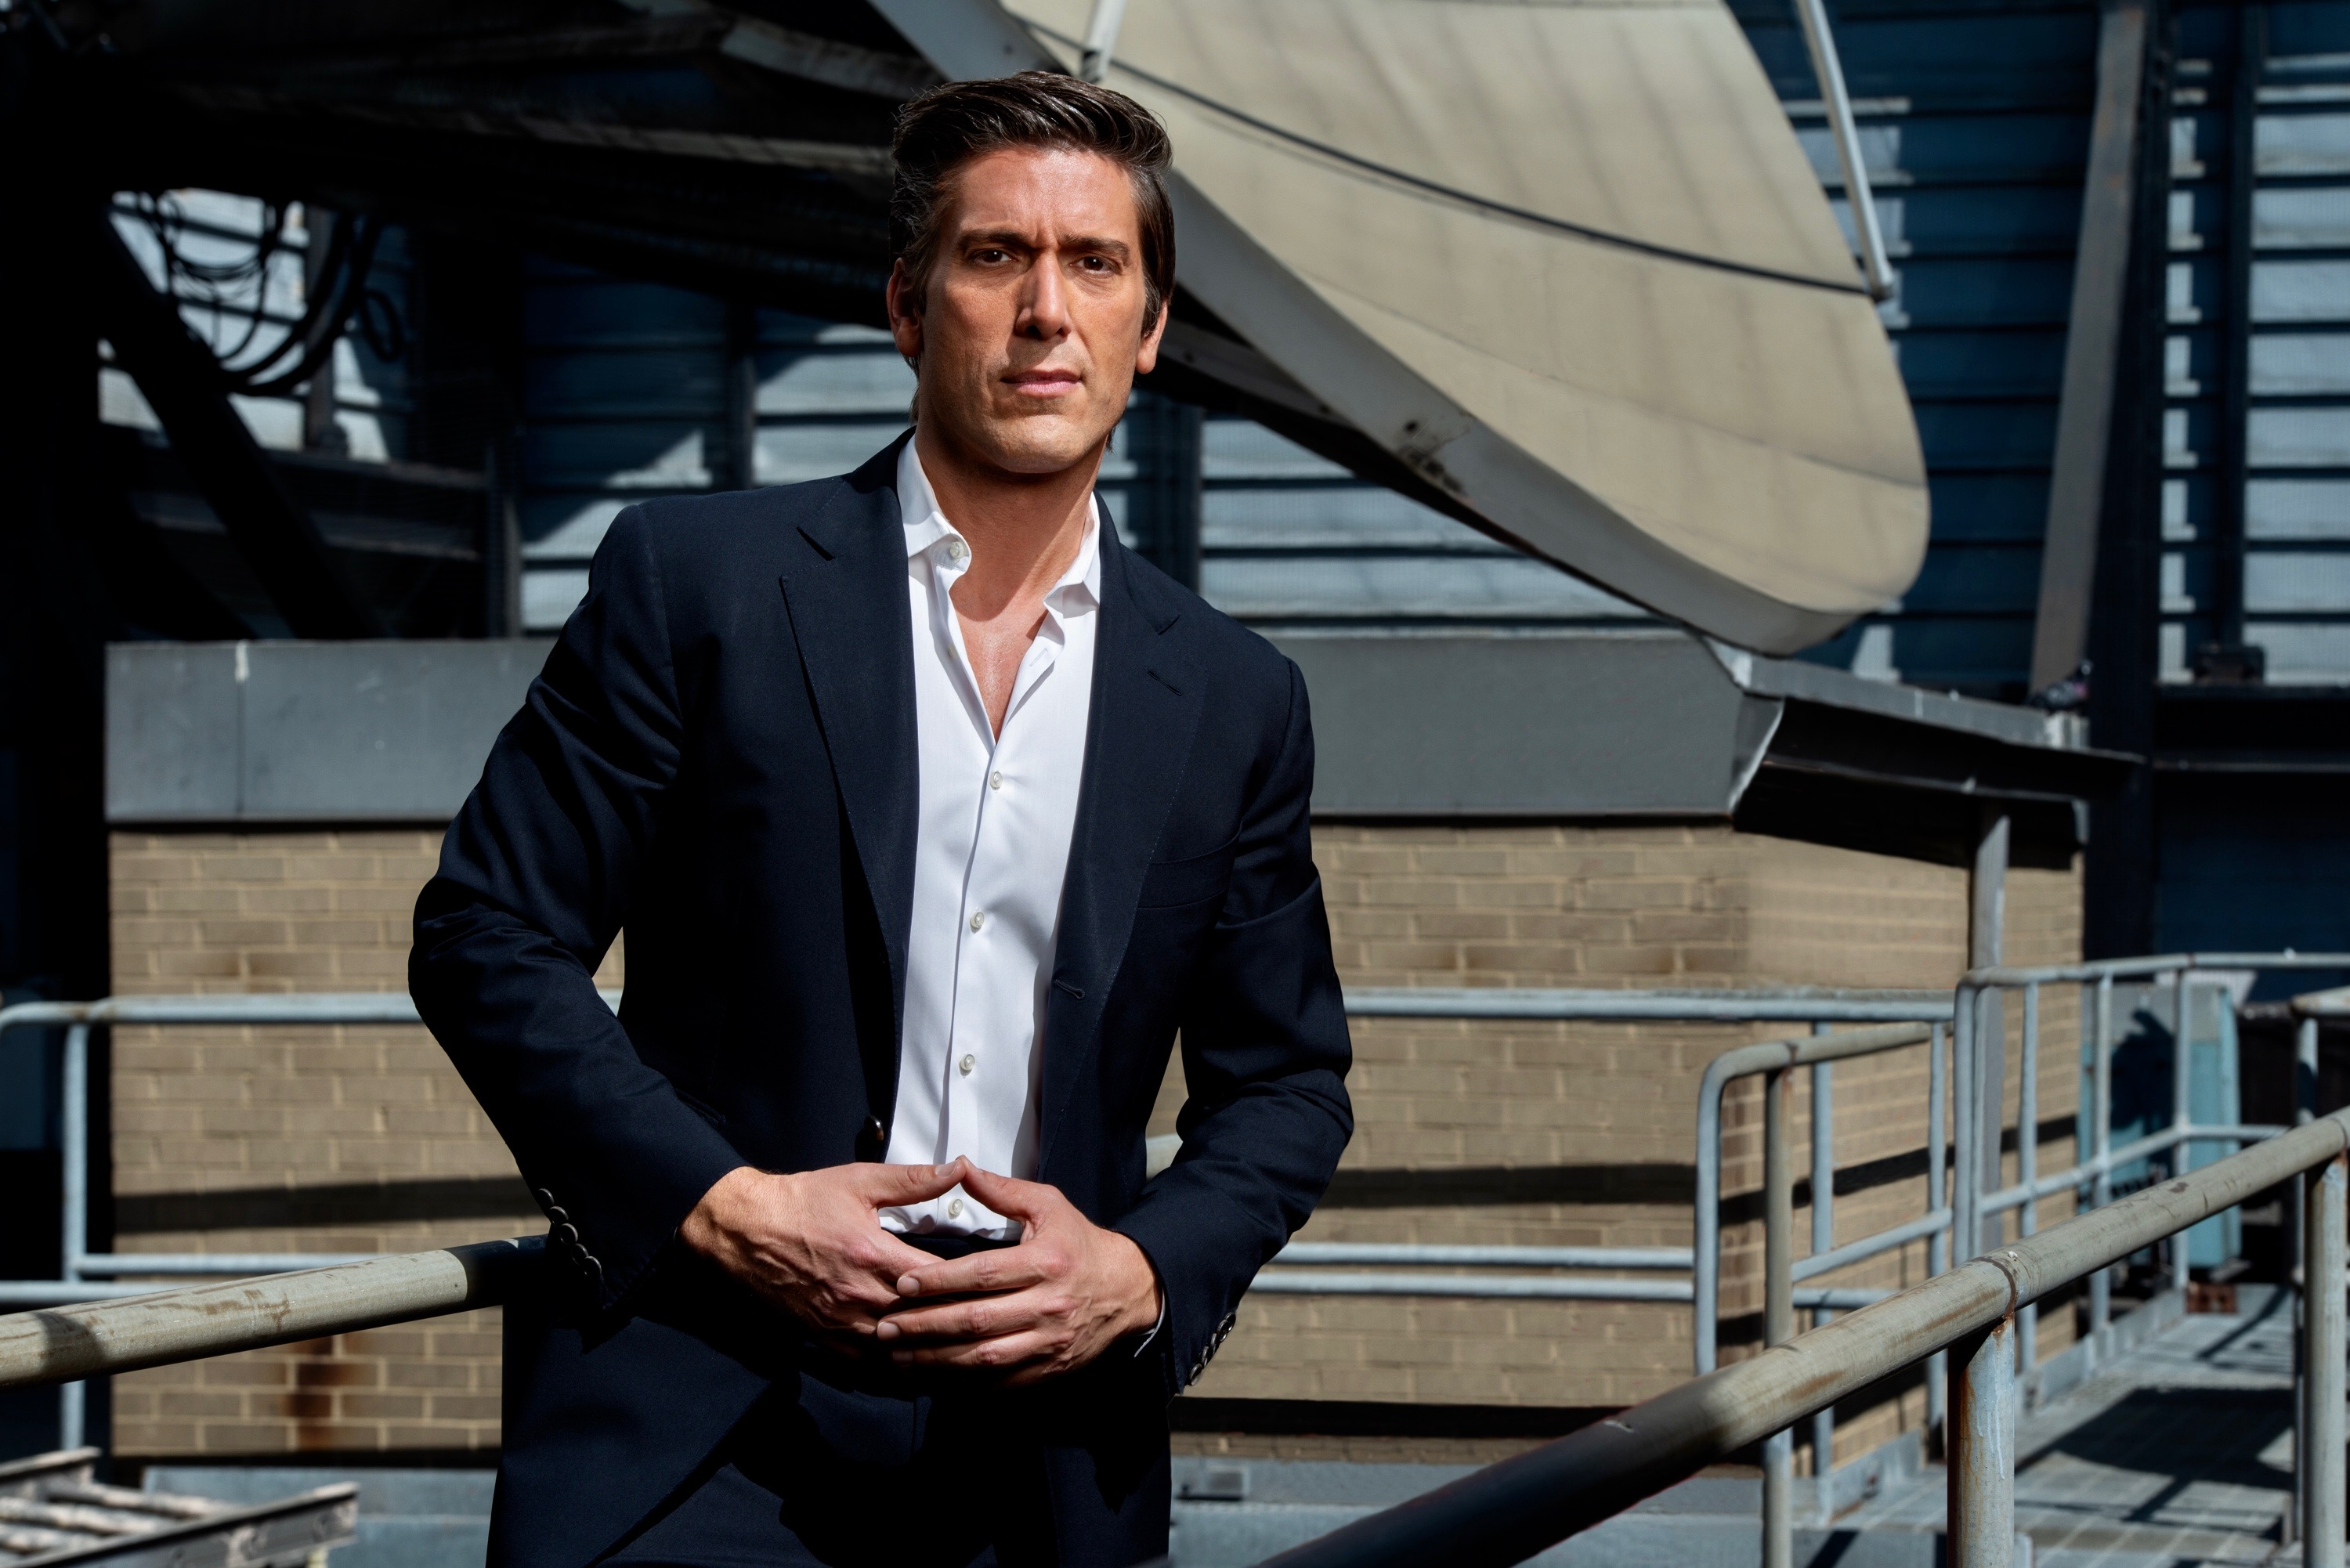 David Muir is most-watched news anchor for 3rd year in a row